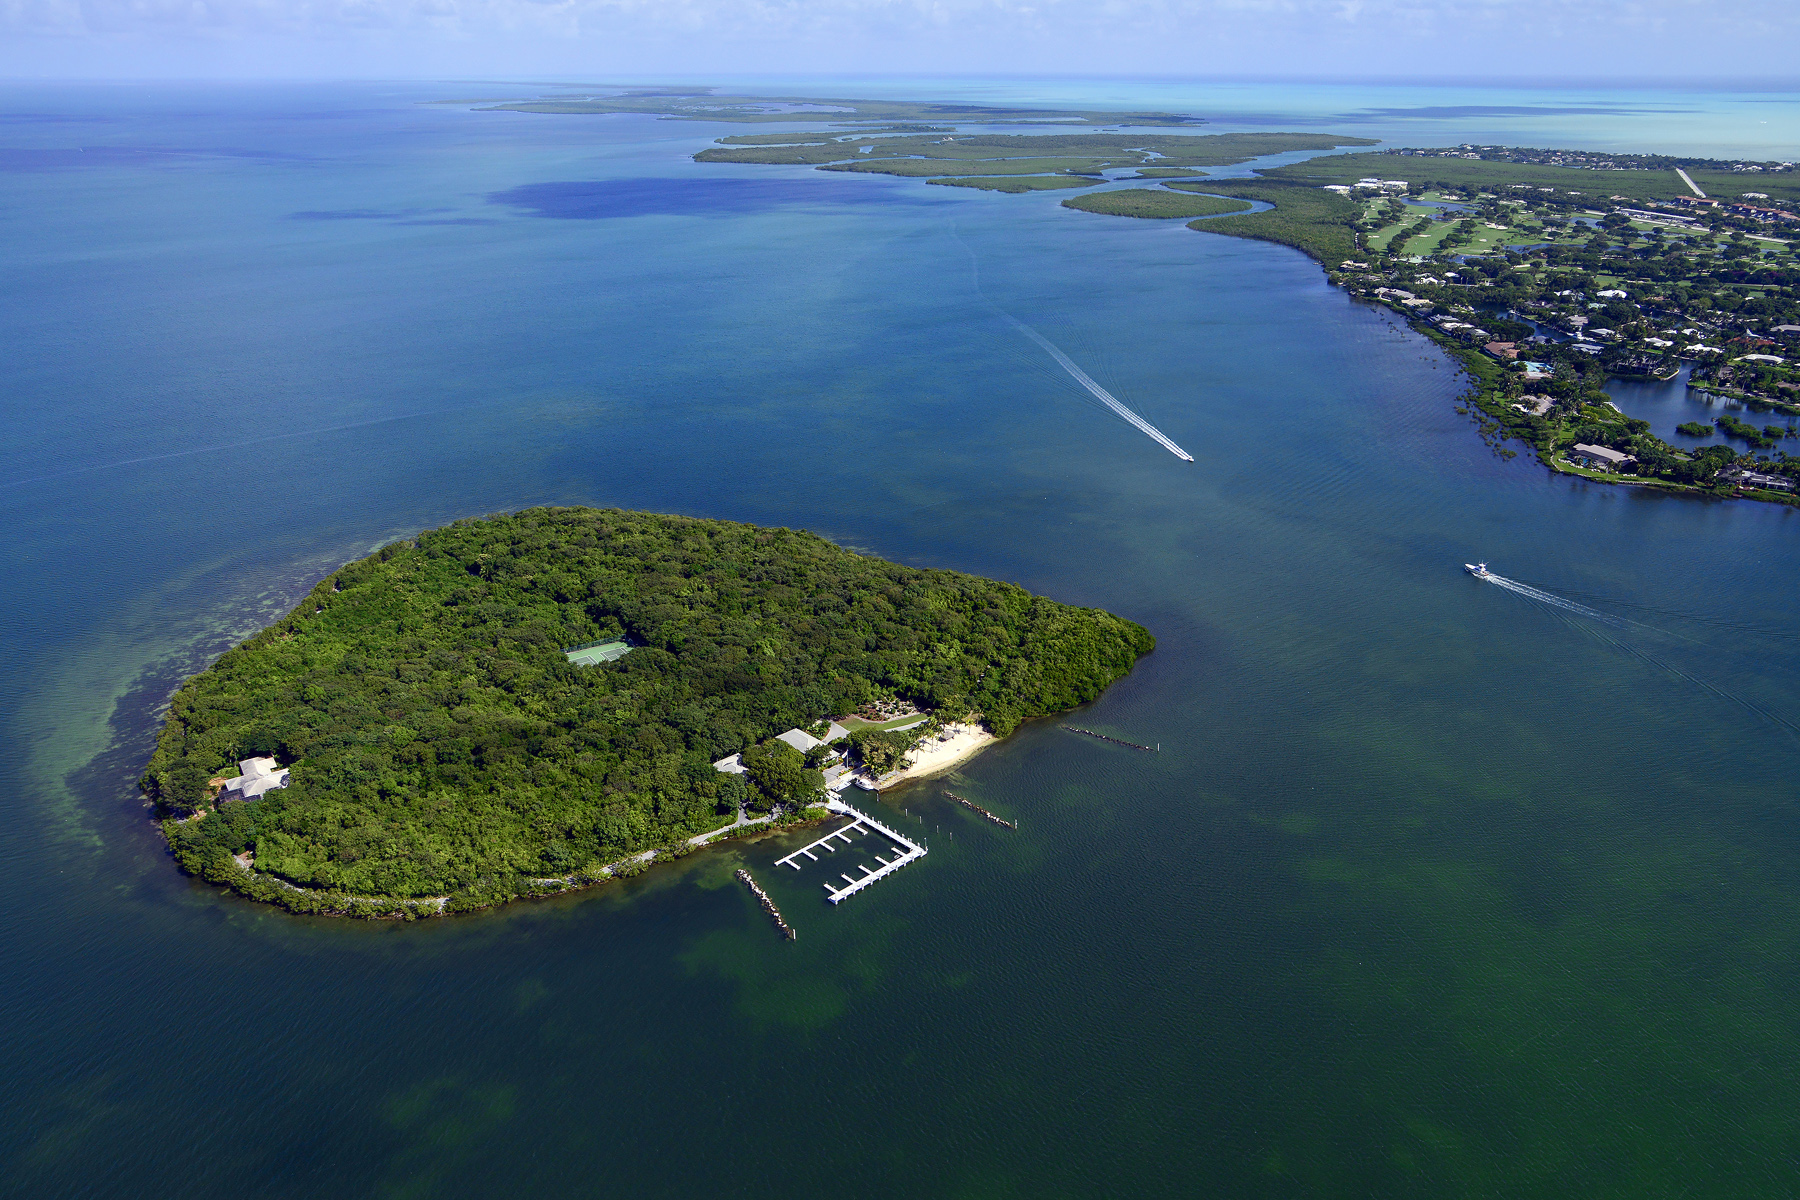 Isla por un Venta en Pumpkin Key - Private Island in the Florida Keys Key Largo, Florida 33037 Estados Unidos